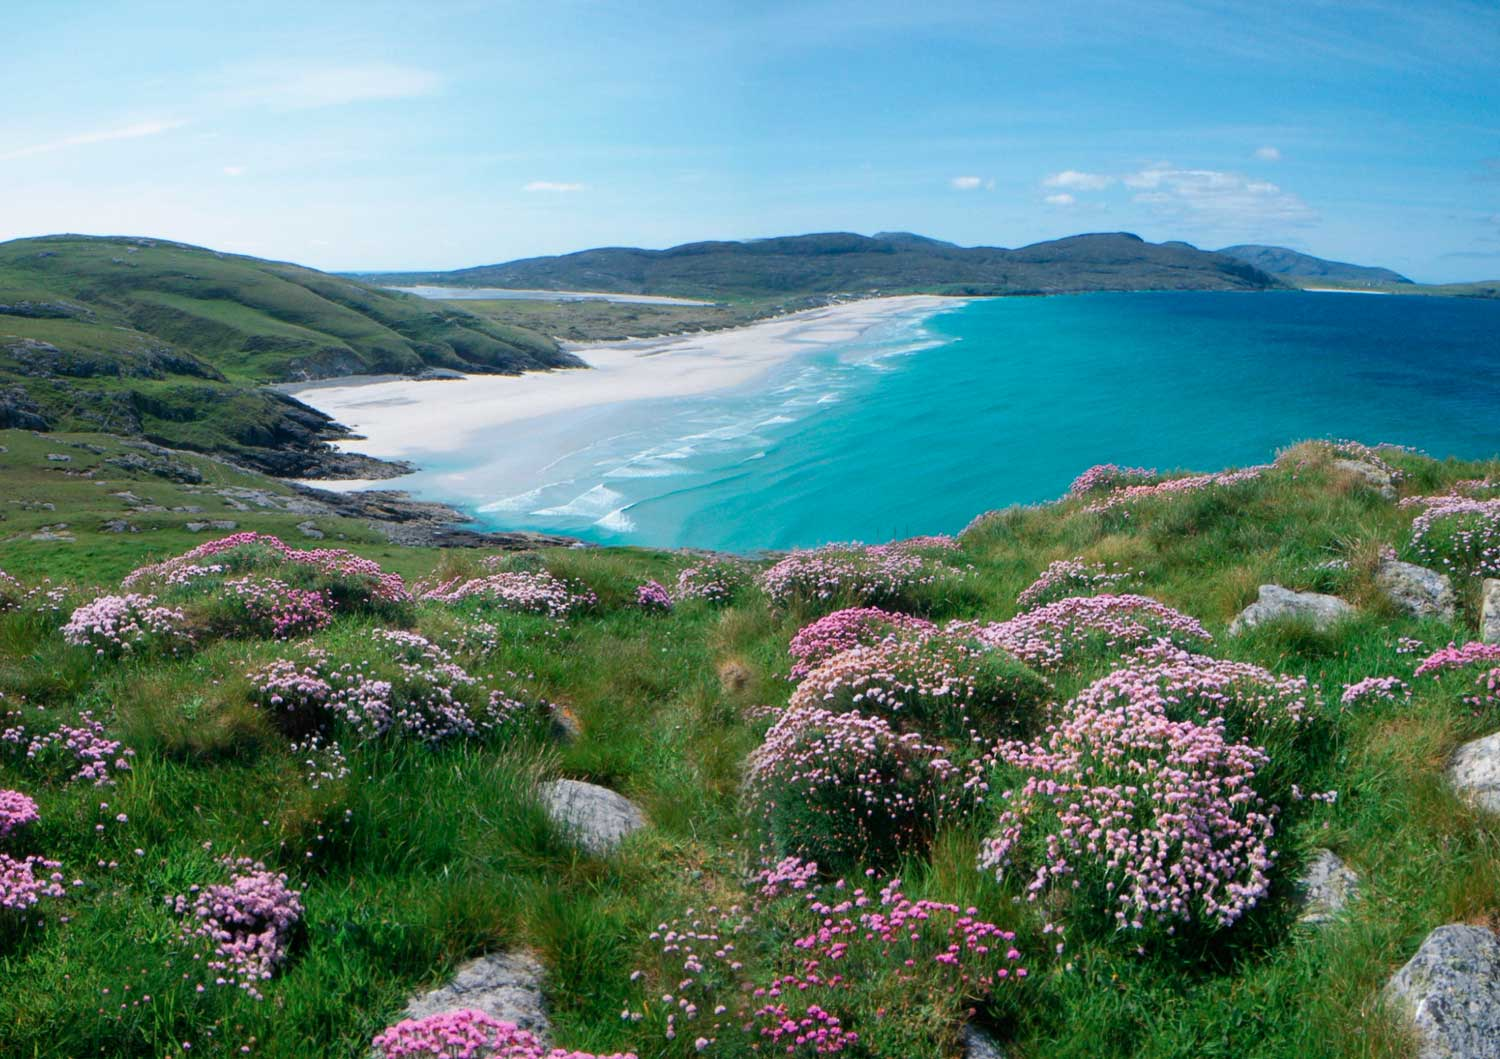 Traigh Eais beach, Isle of Barra